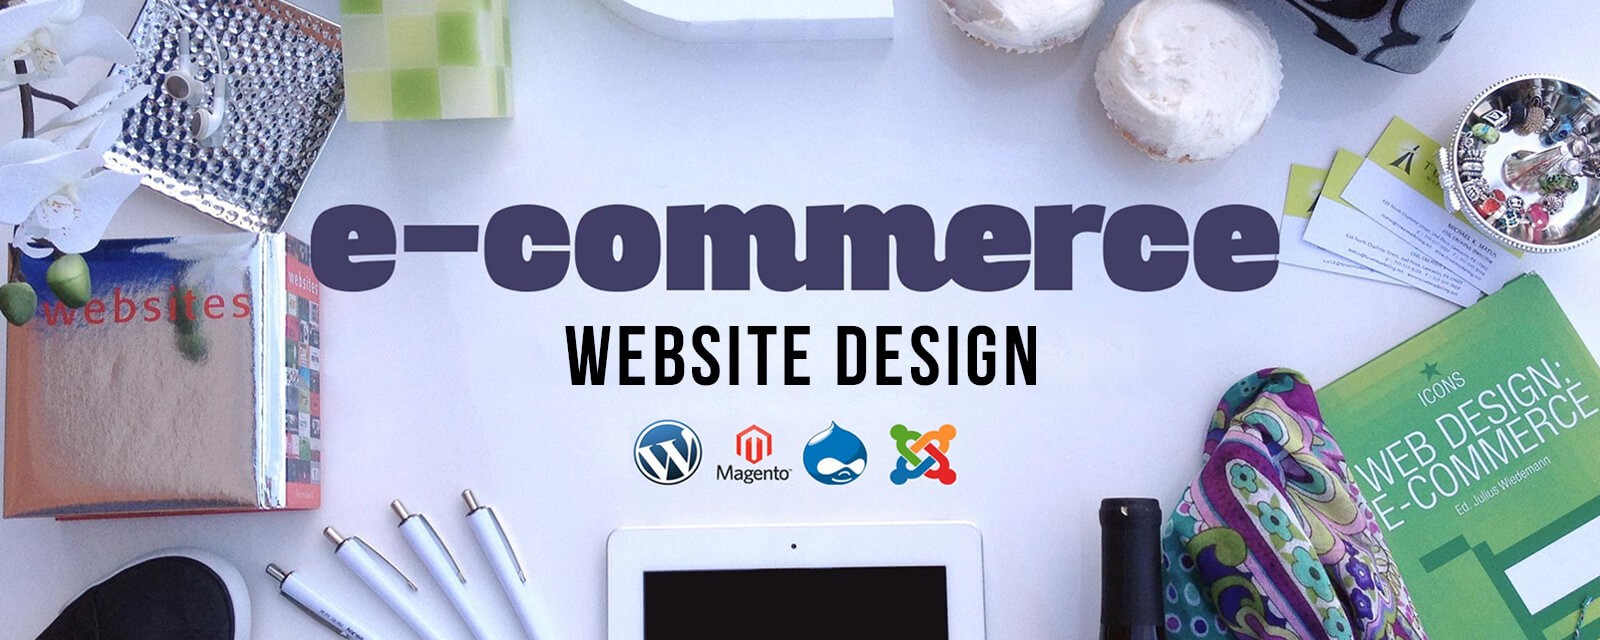 WooCommerce blog banner